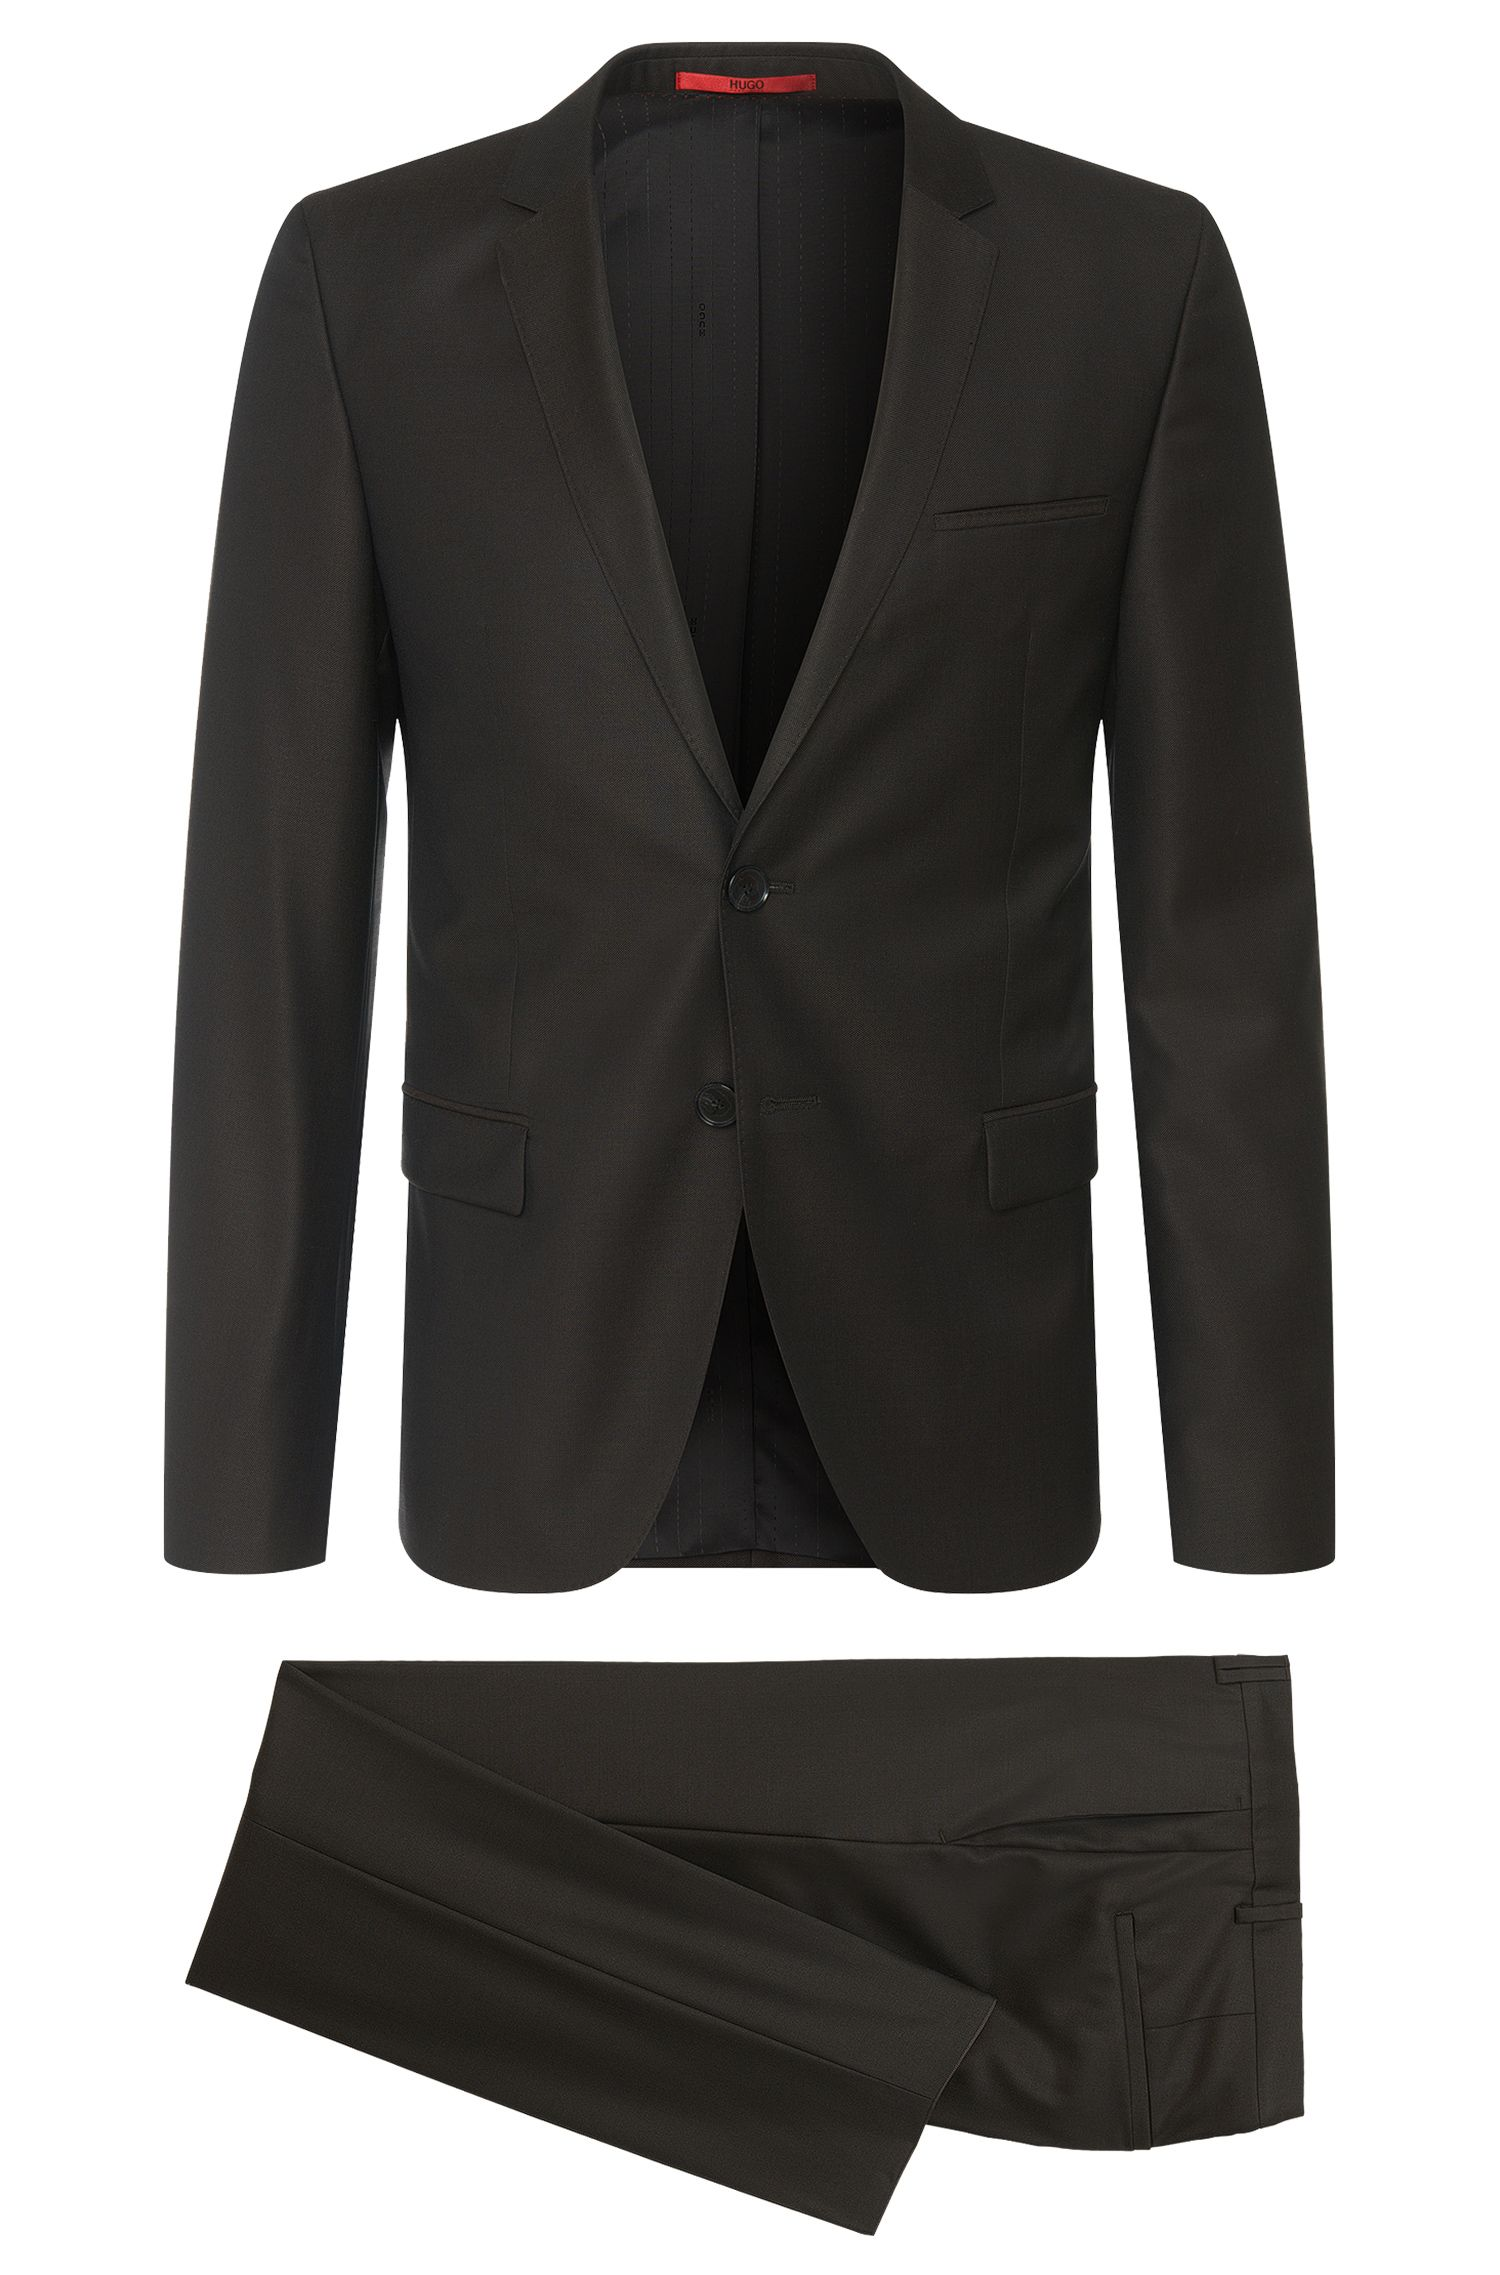 'Arti/Helion' | Slim Fit, Italian Virgin Wool Silk Suit